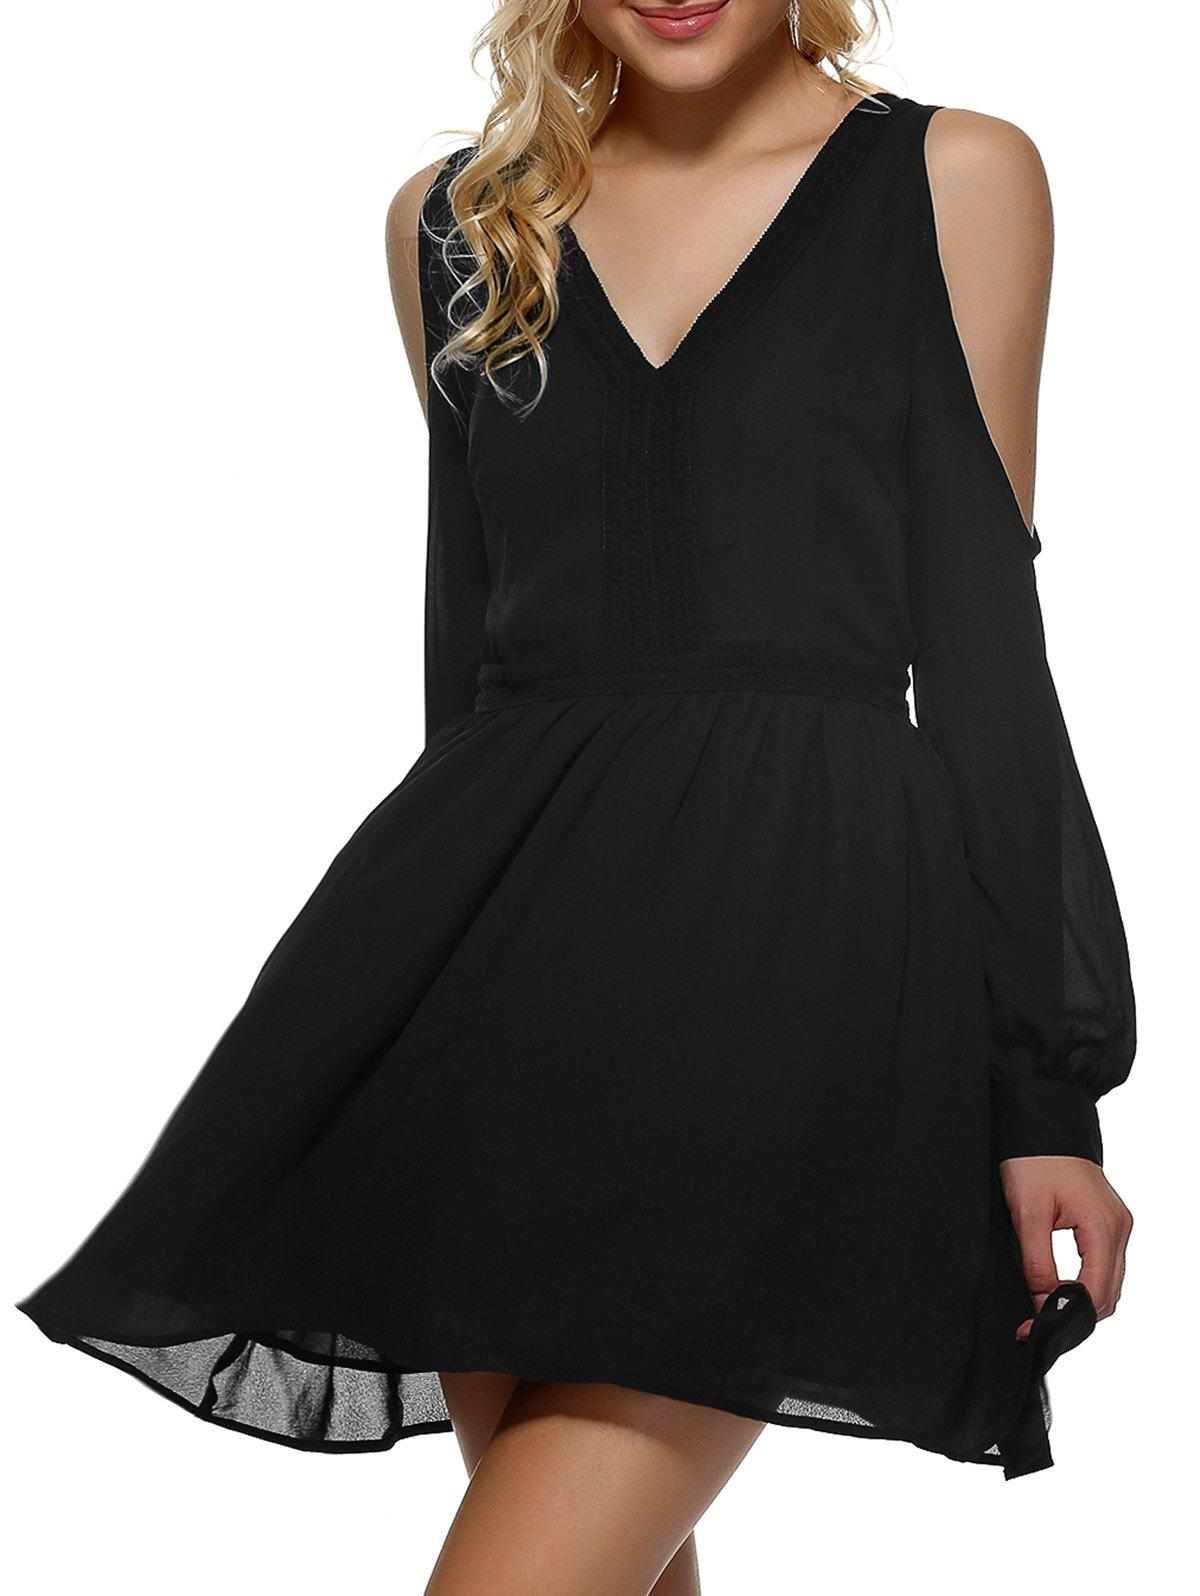 V Neck Cut Out Chiffon Dress - BLACK XL